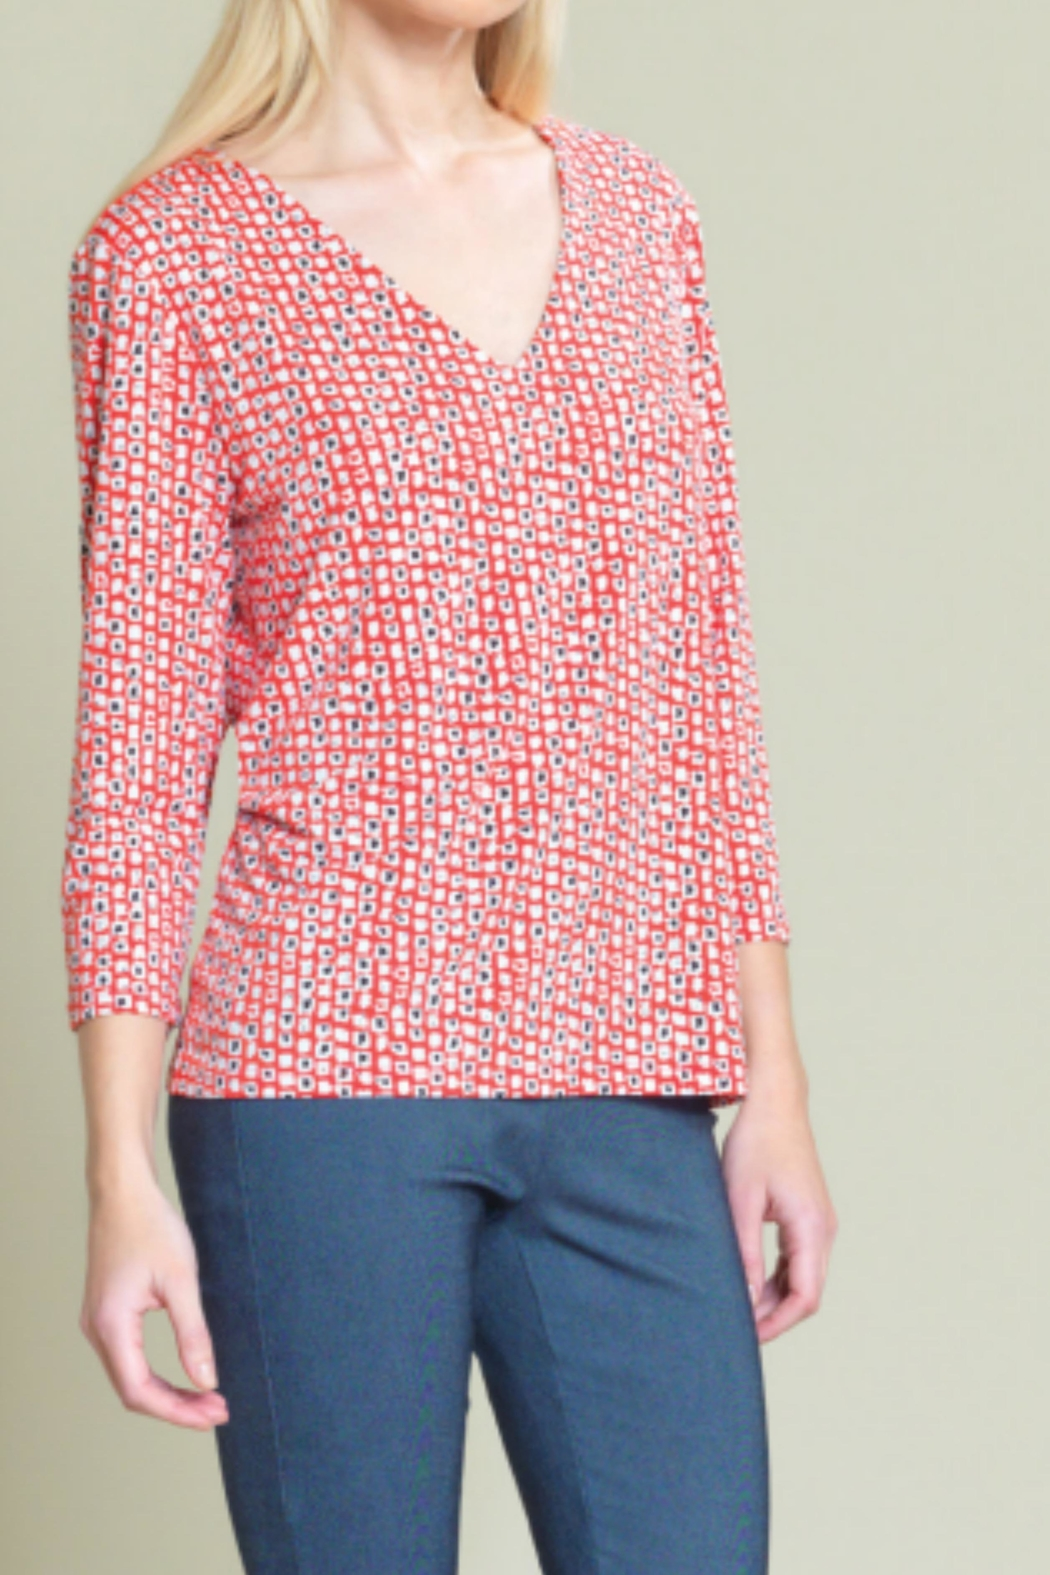 Clara Sunwoo Patterned Silky Top - Front Cropped Image